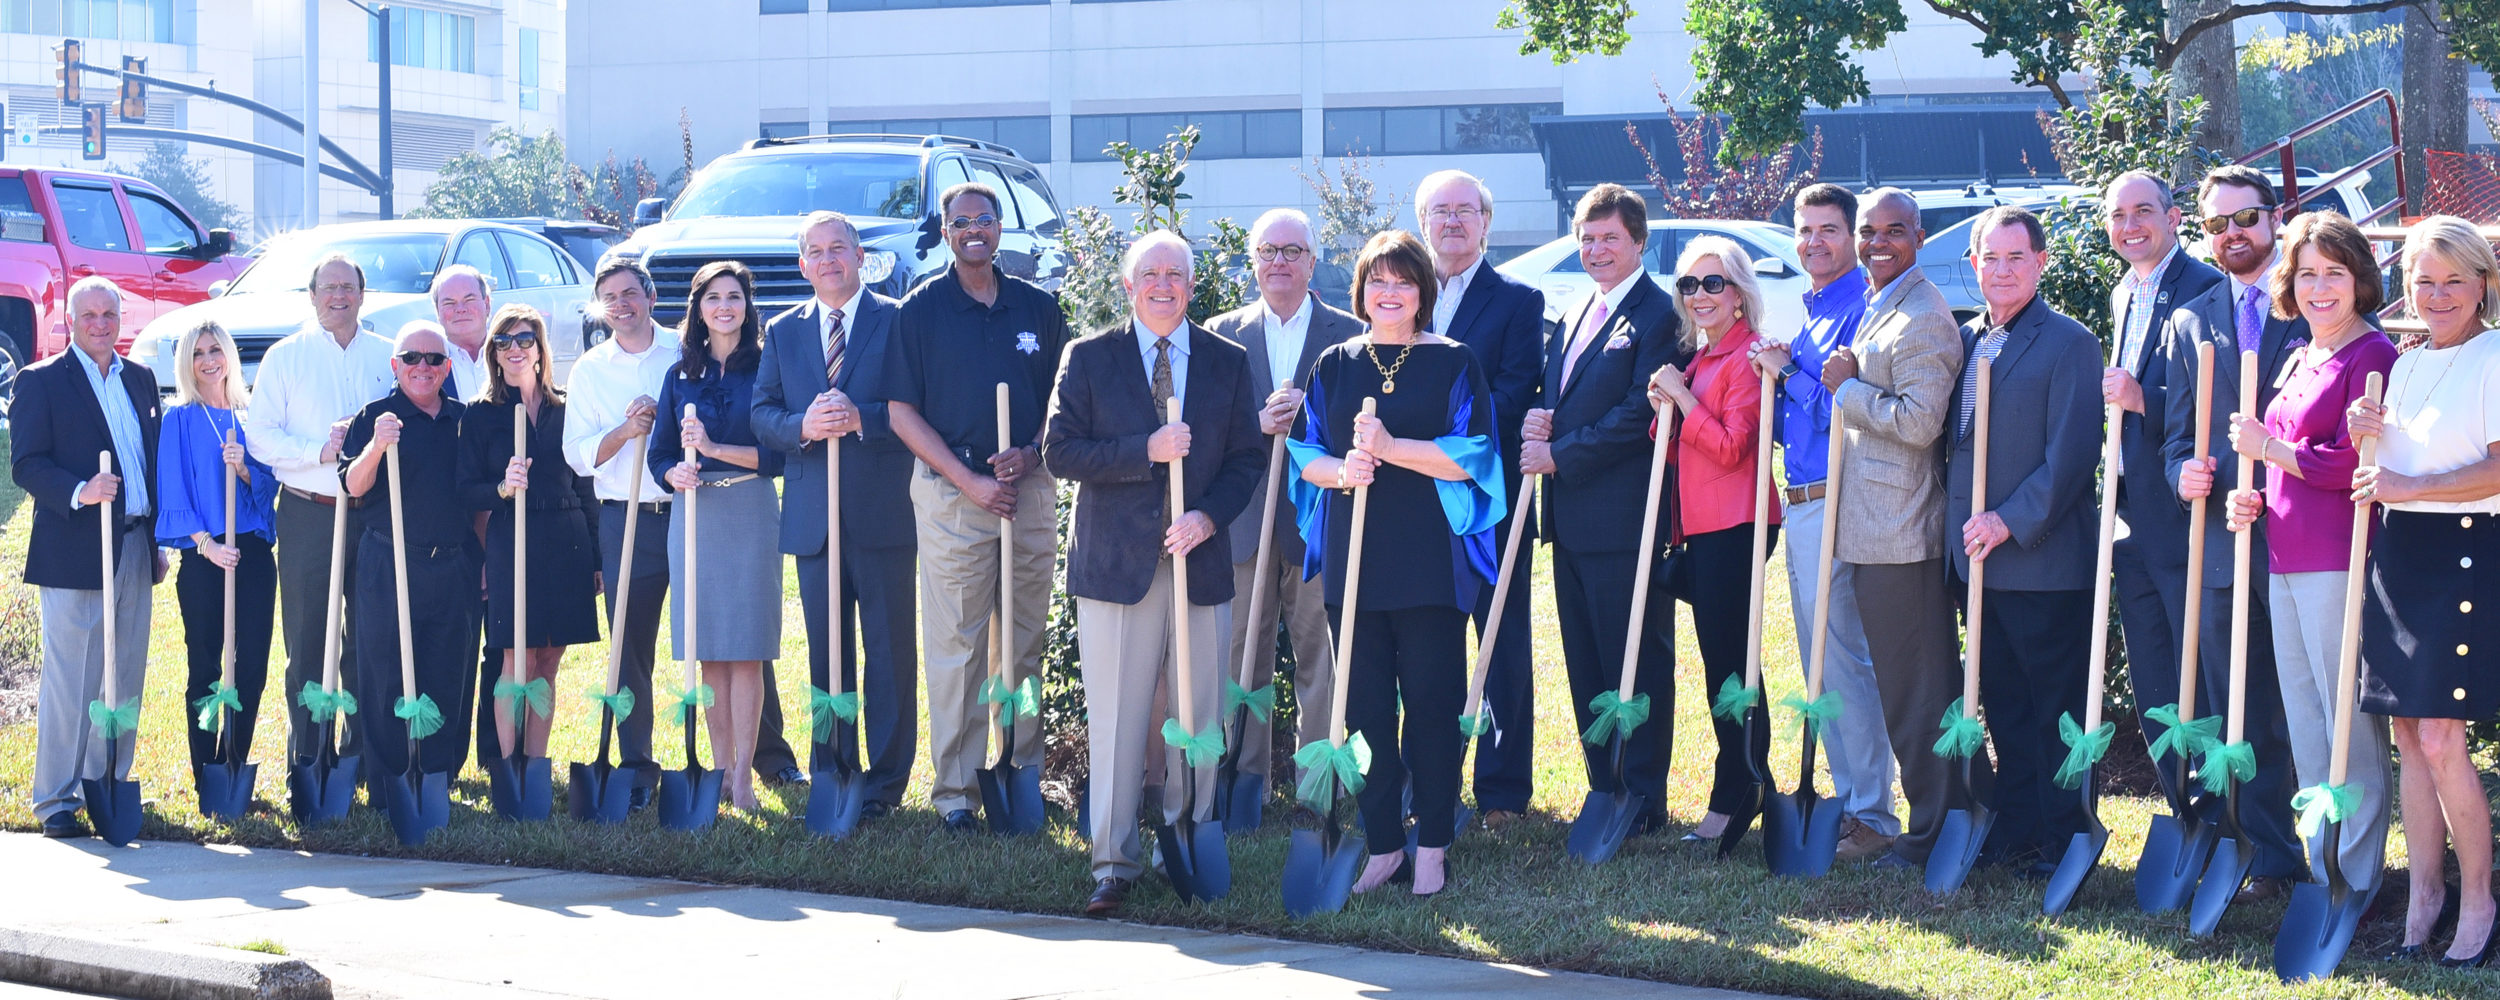 Forrest General Healthcare Foundation and Forrest General Hospital Host Ground Breaking Ceremony for Becky and Bill Oliver Healing Garden